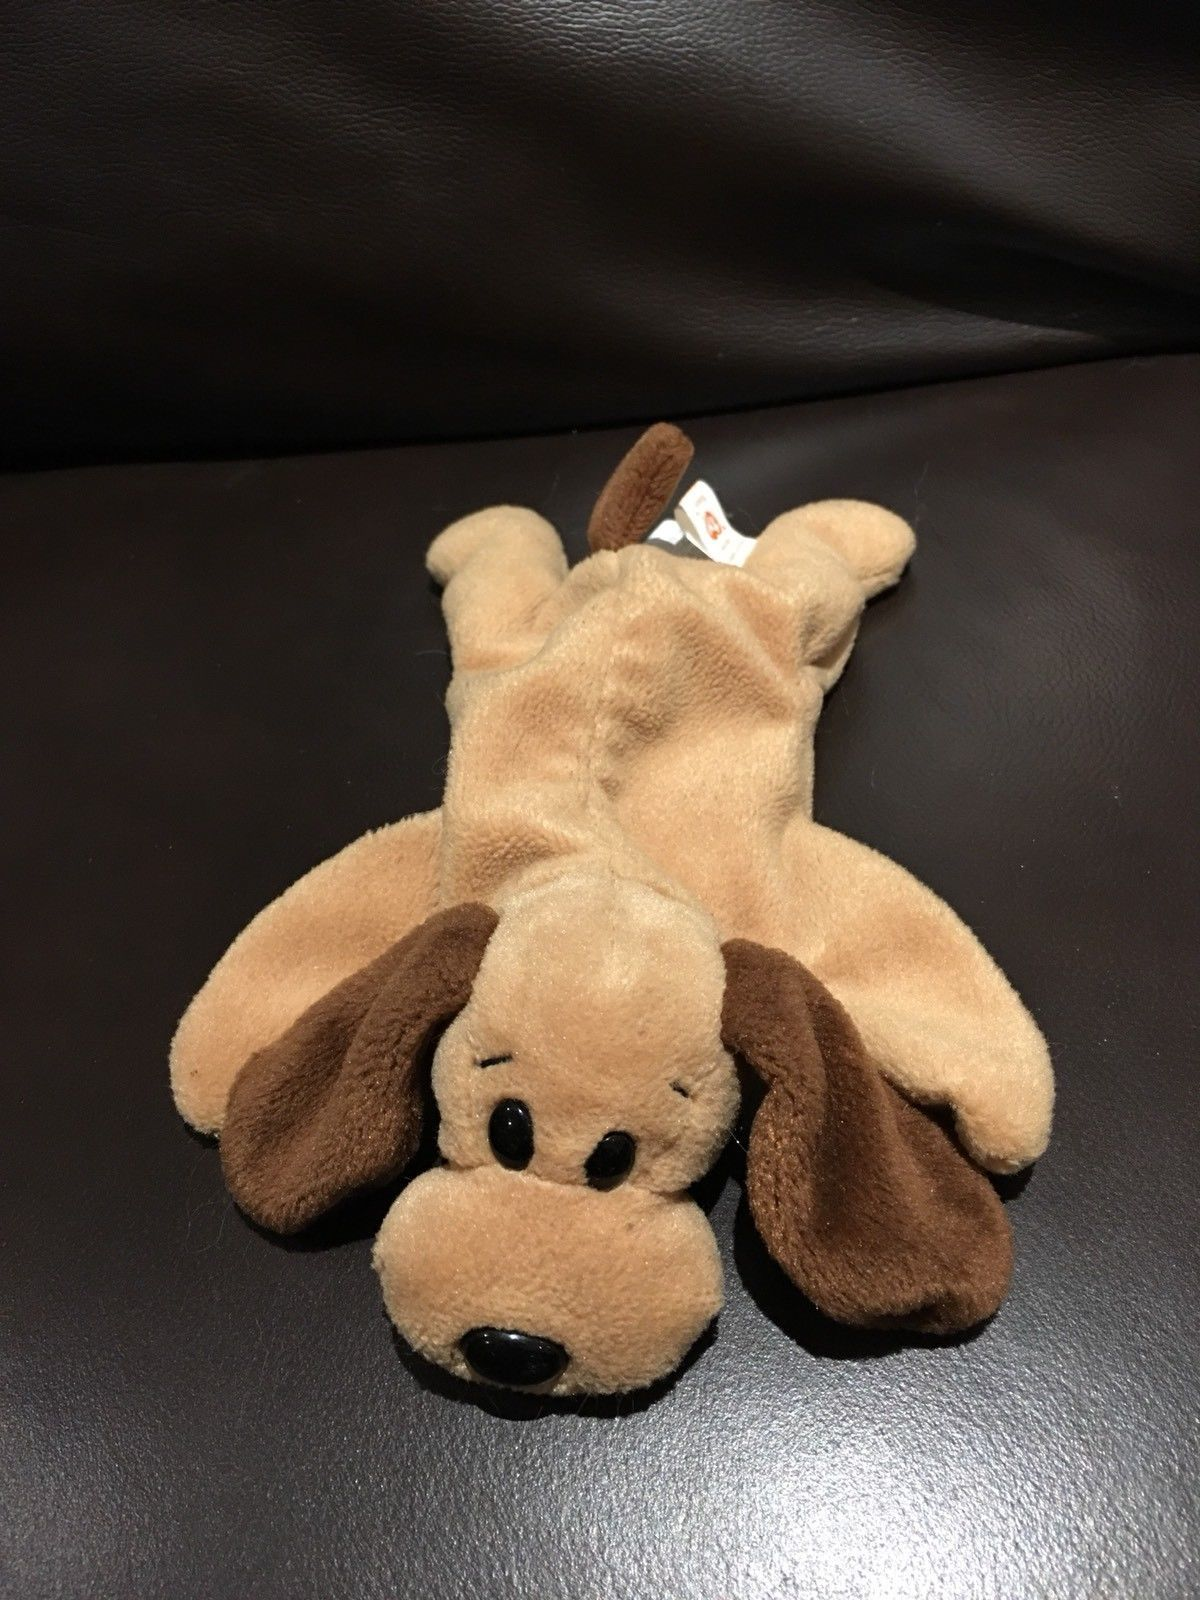 615d5caeafb TY Retired 1993 BONES Beanie Baby Like New and 31 similar items. S l1600